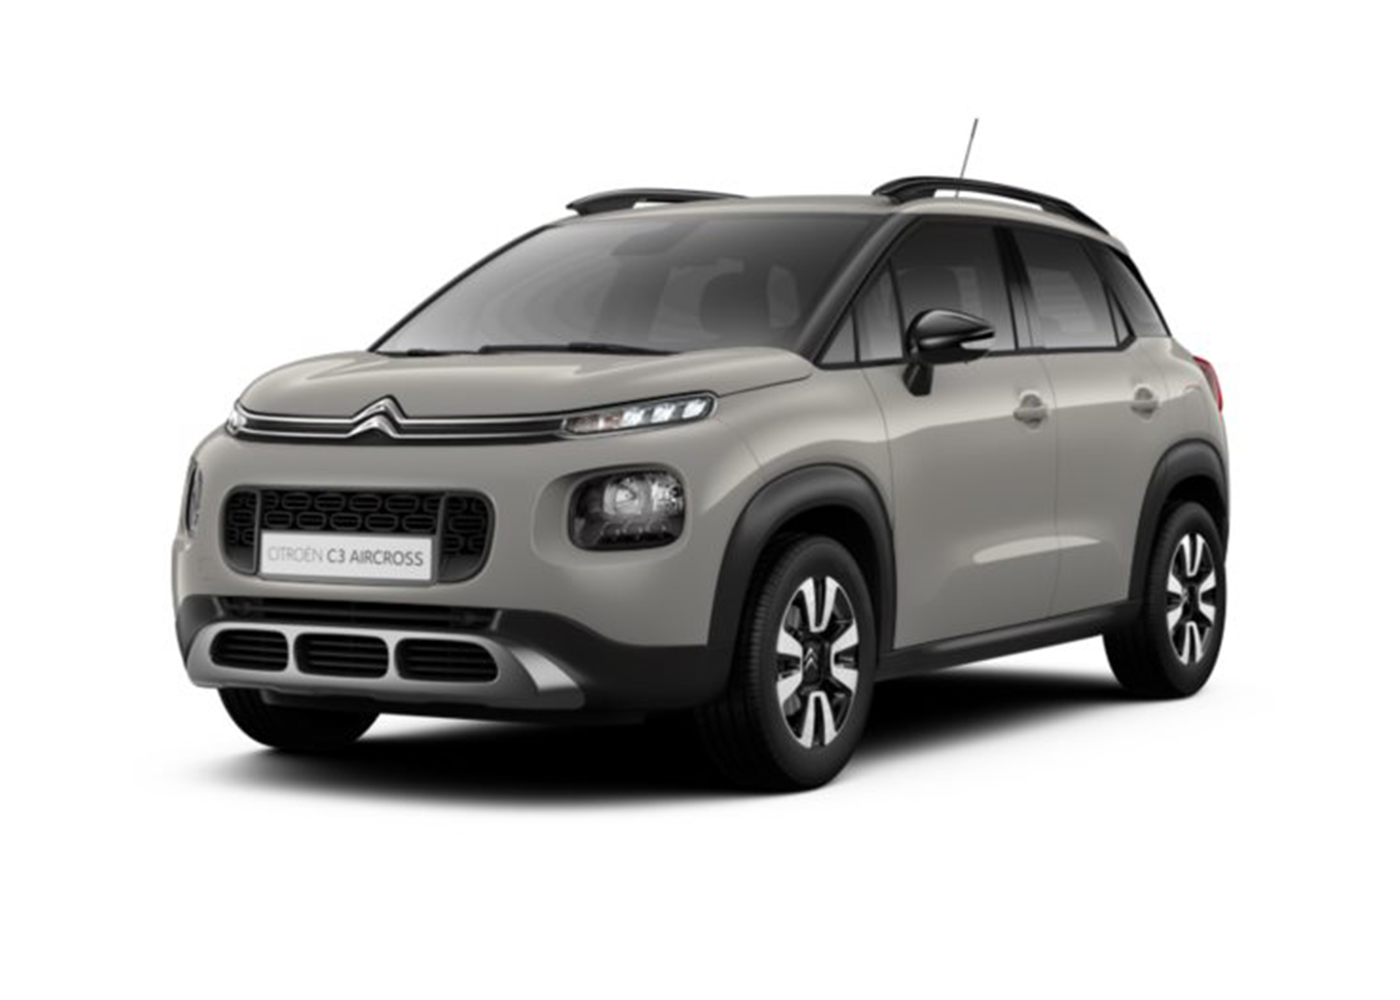 citroen c3 aircross bluehdi 100 feel soft sand km0 a soli 17450 su miacar 1isjw. Black Bedroom Furniture Sets. Home Design Ideas